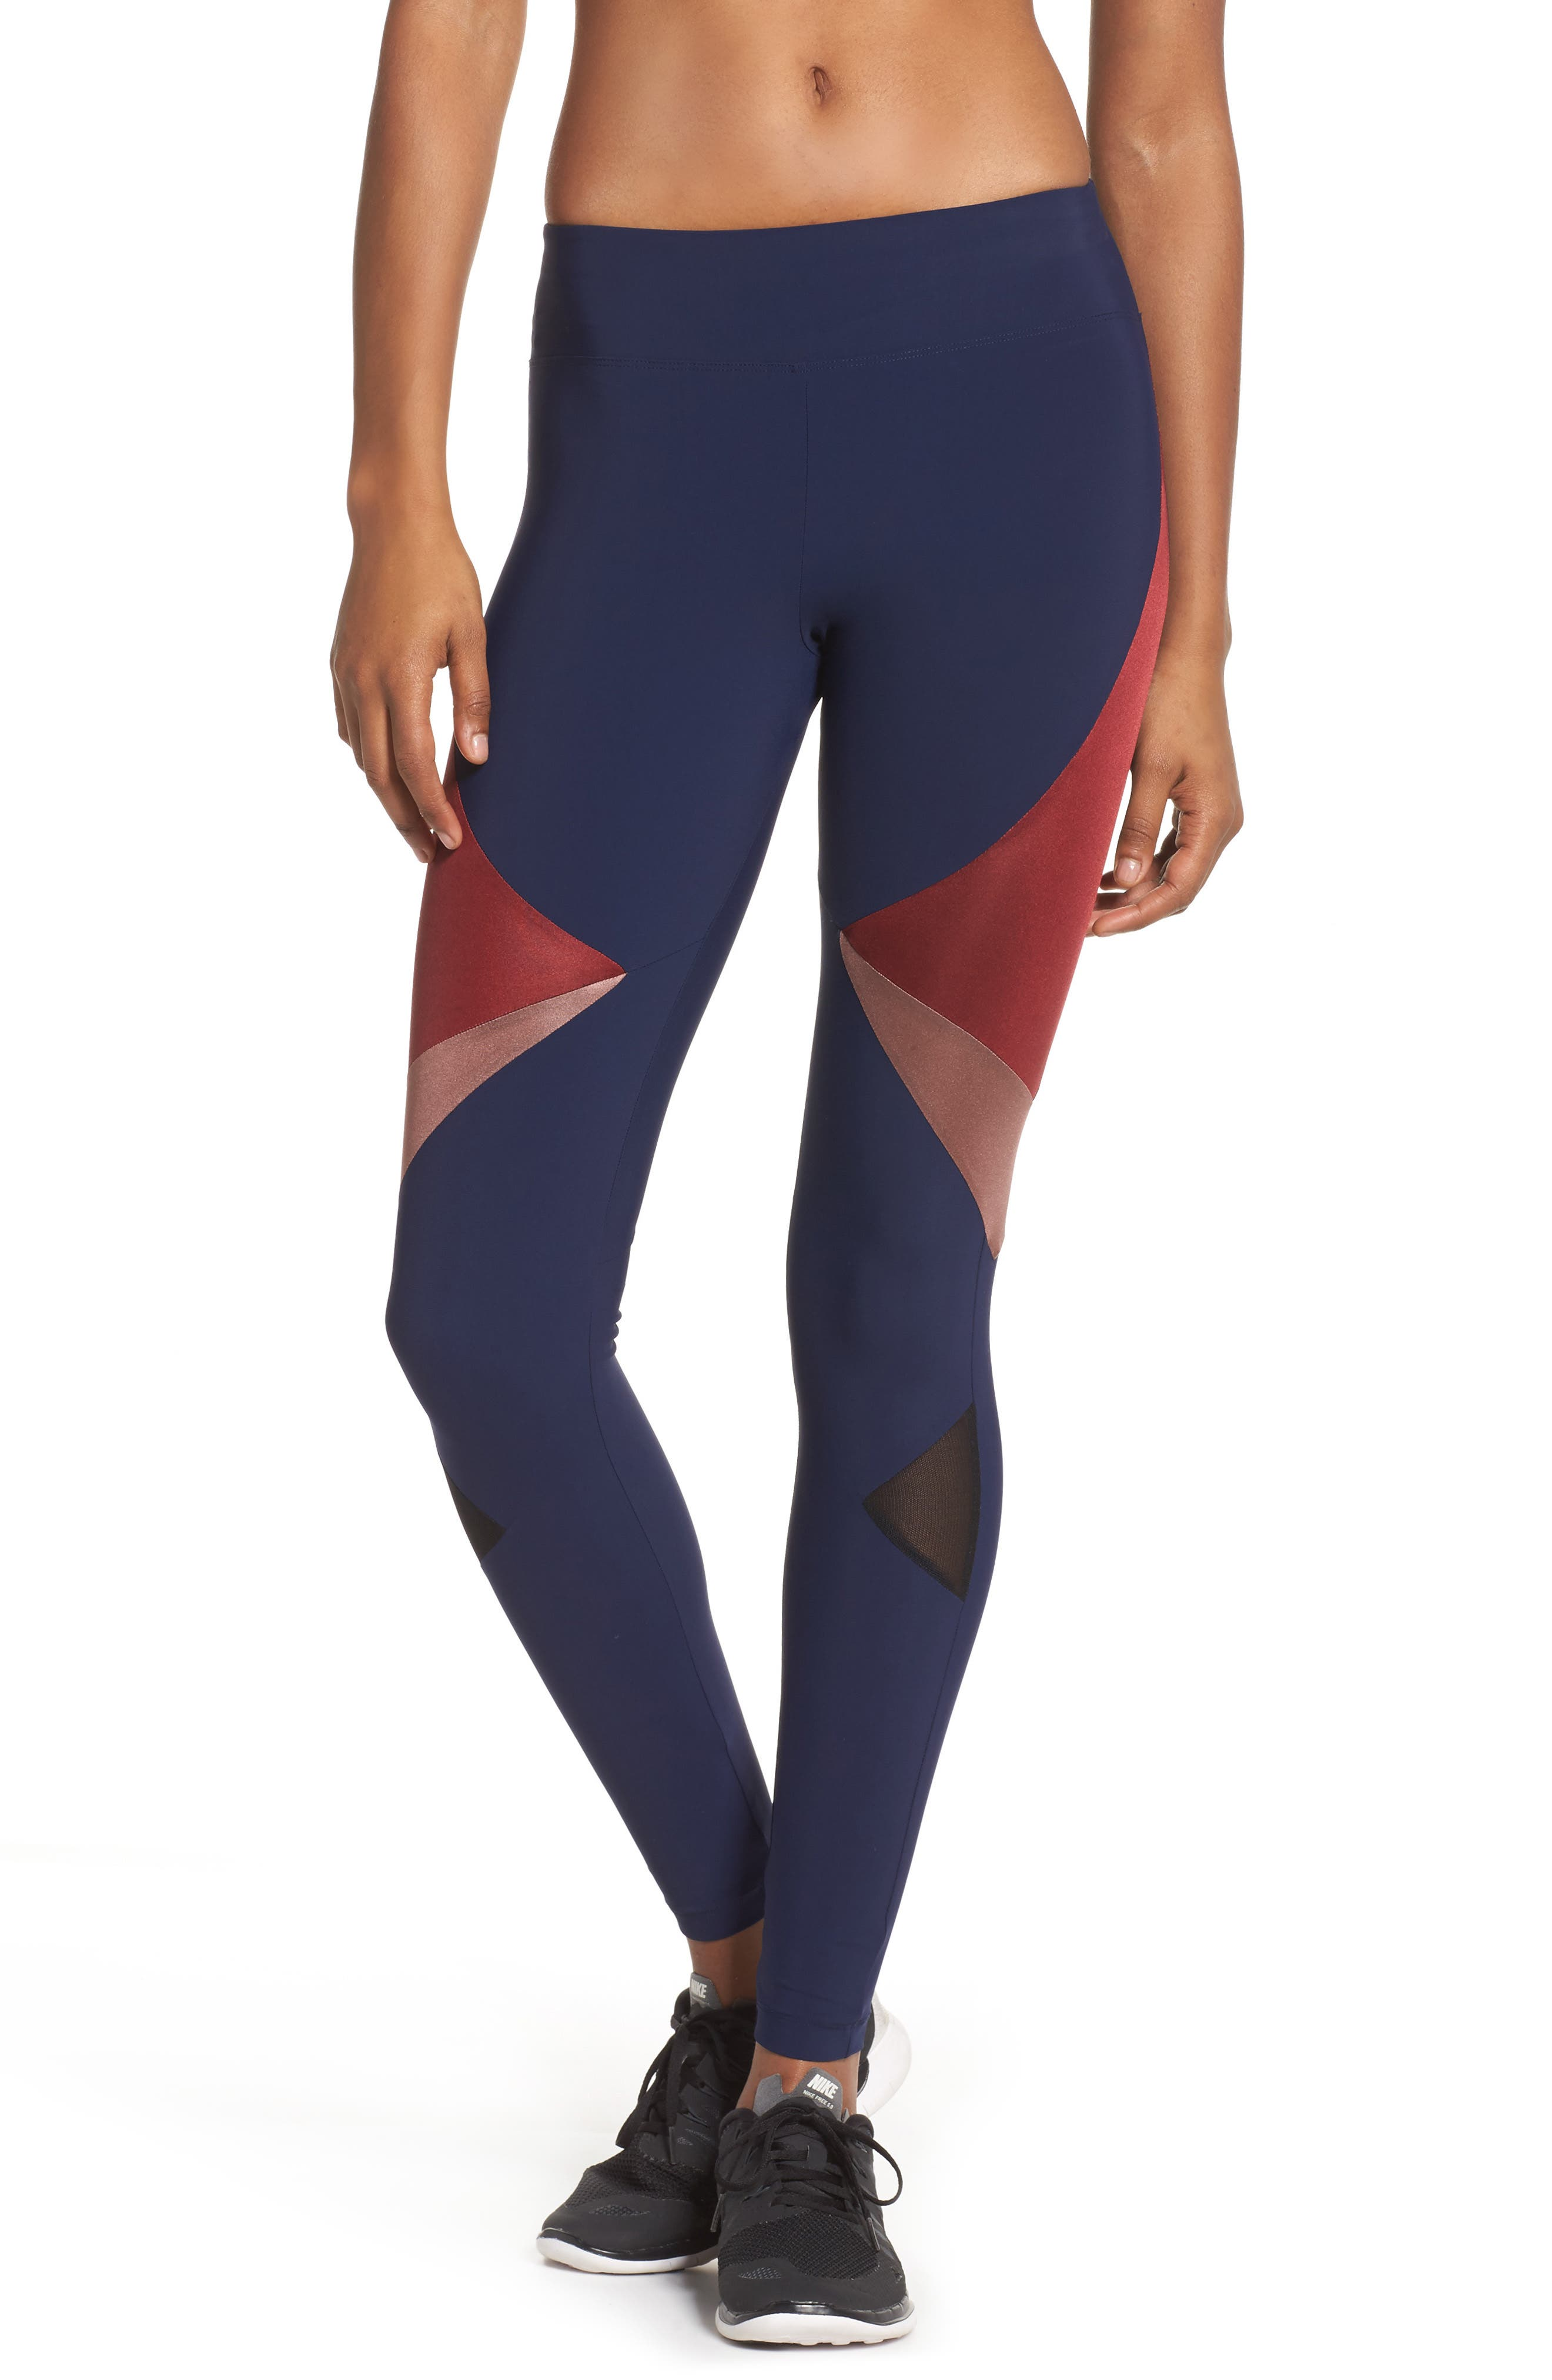 BoomBoom Athletica Compression Leggings,                         Main,                         color, Navy/Oxblood/Rose Gold